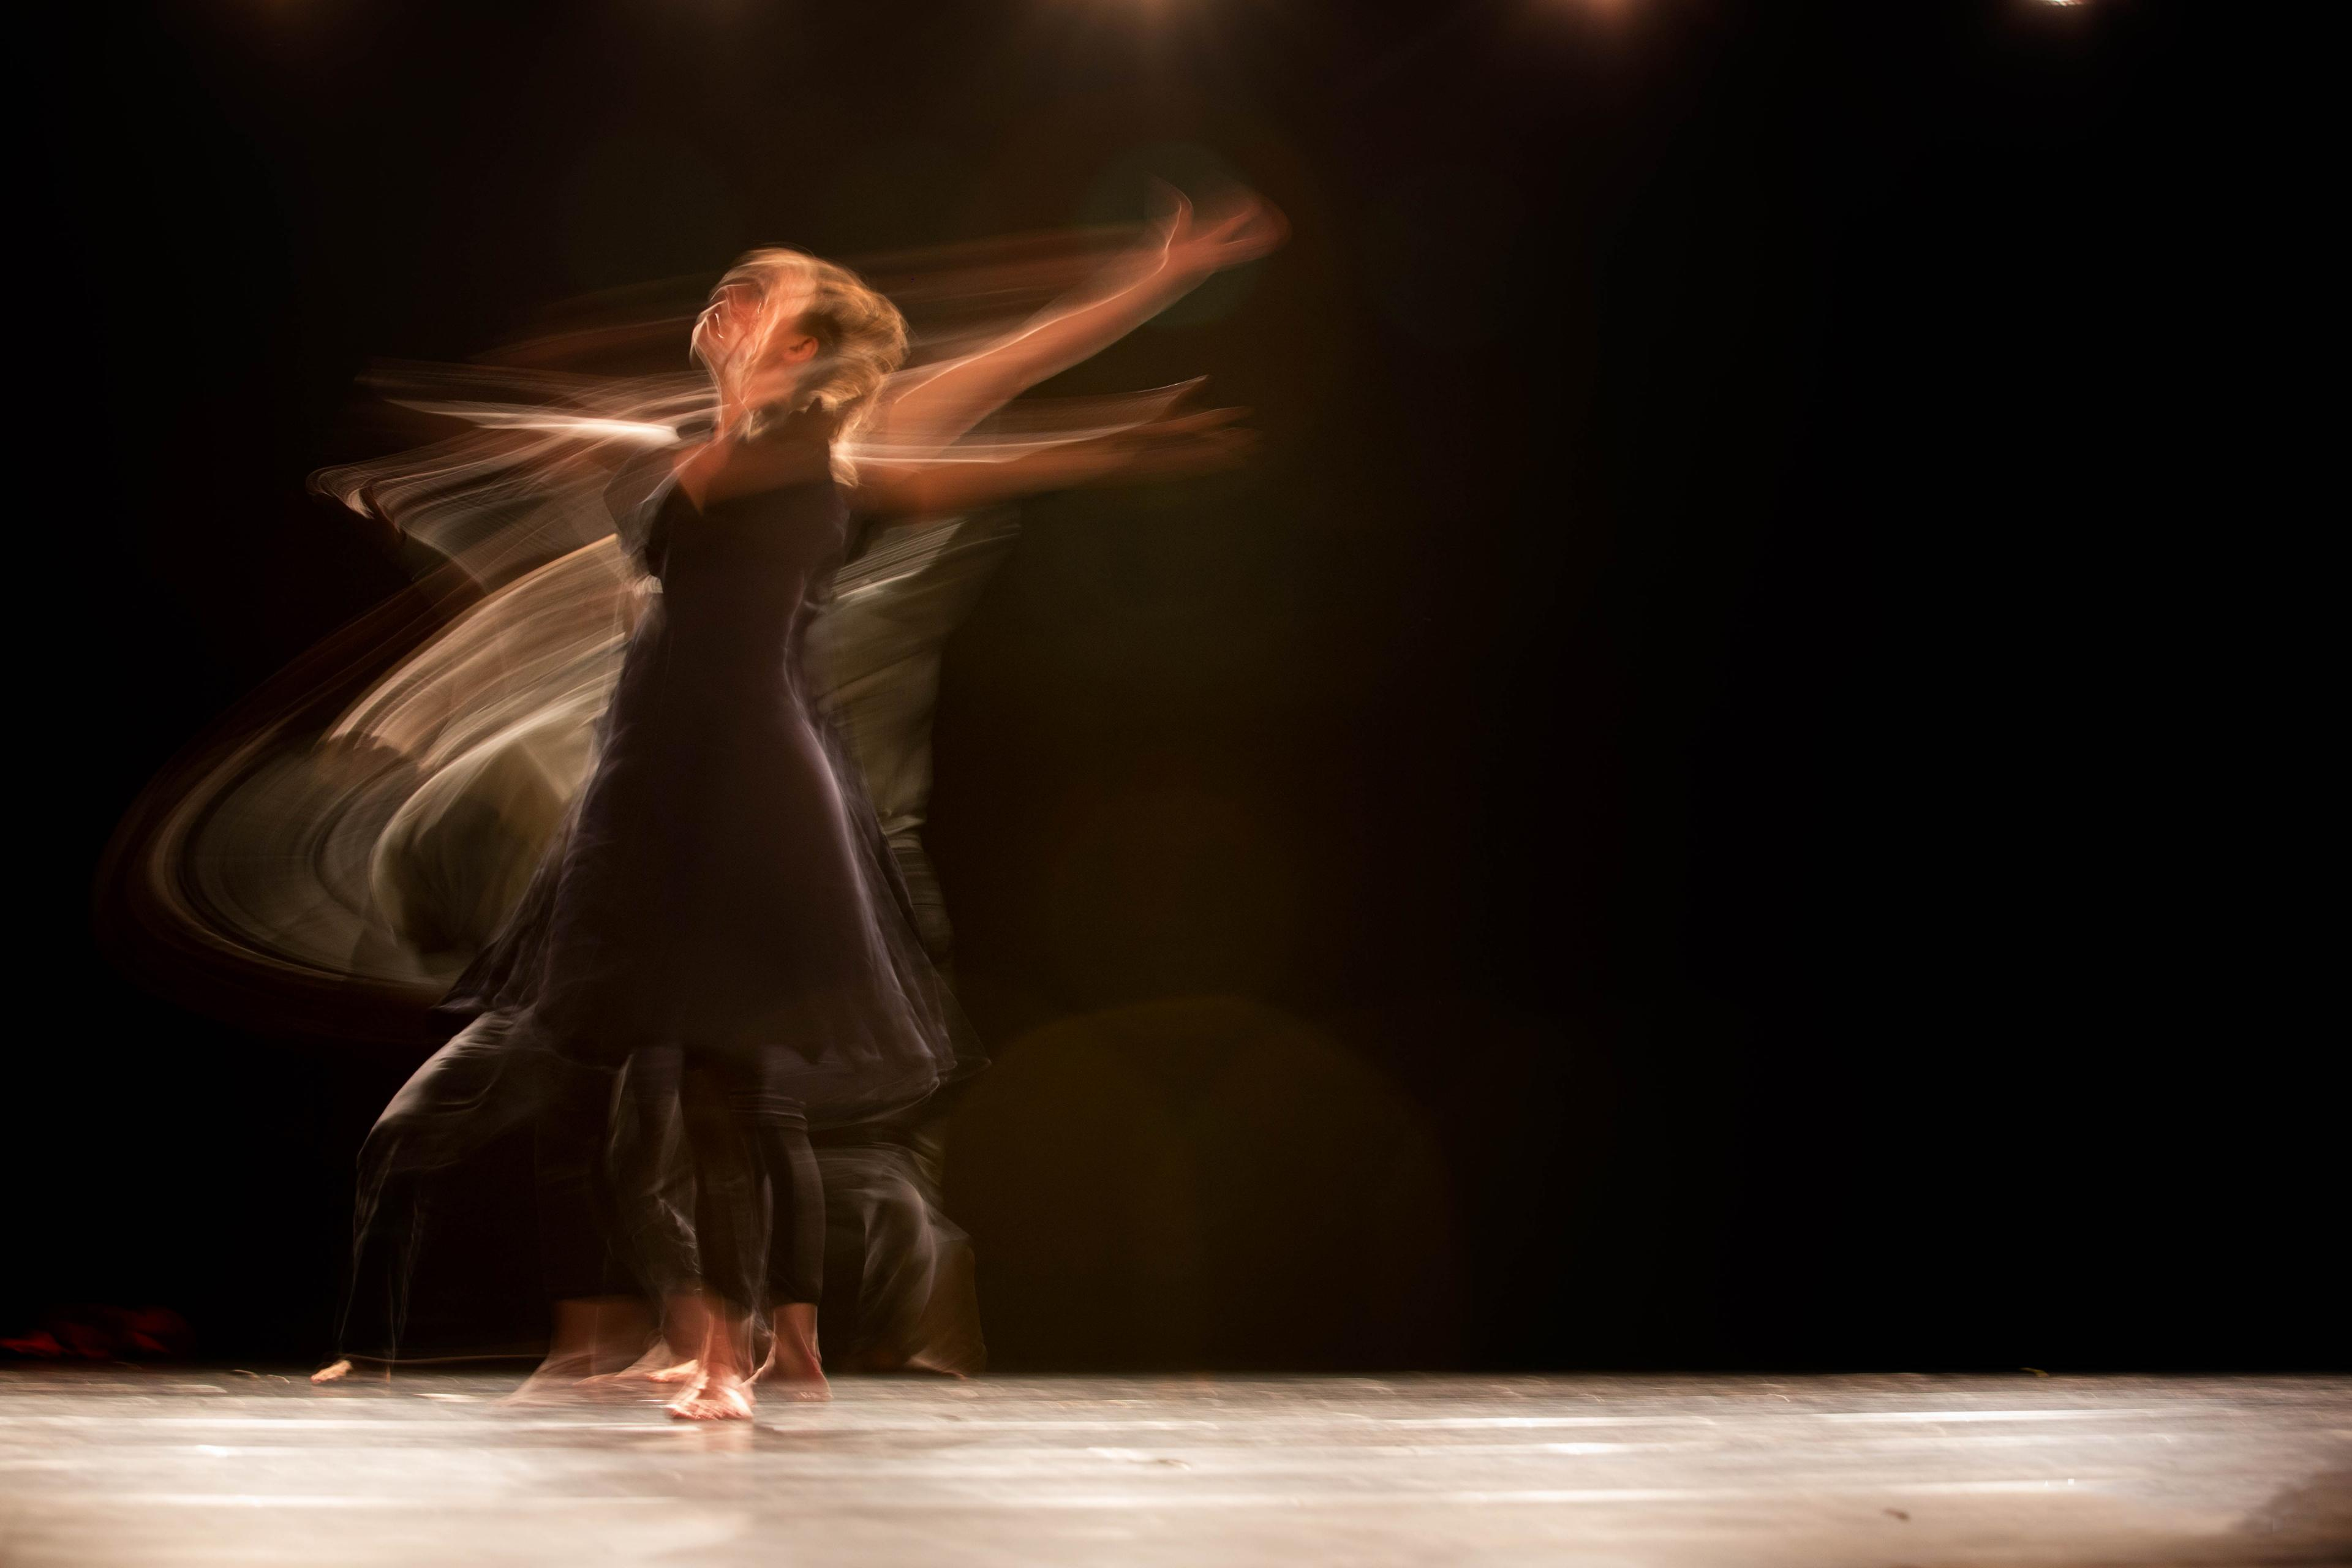 A time-lapse photo showing graceful, dance-like movements of a person against a black background